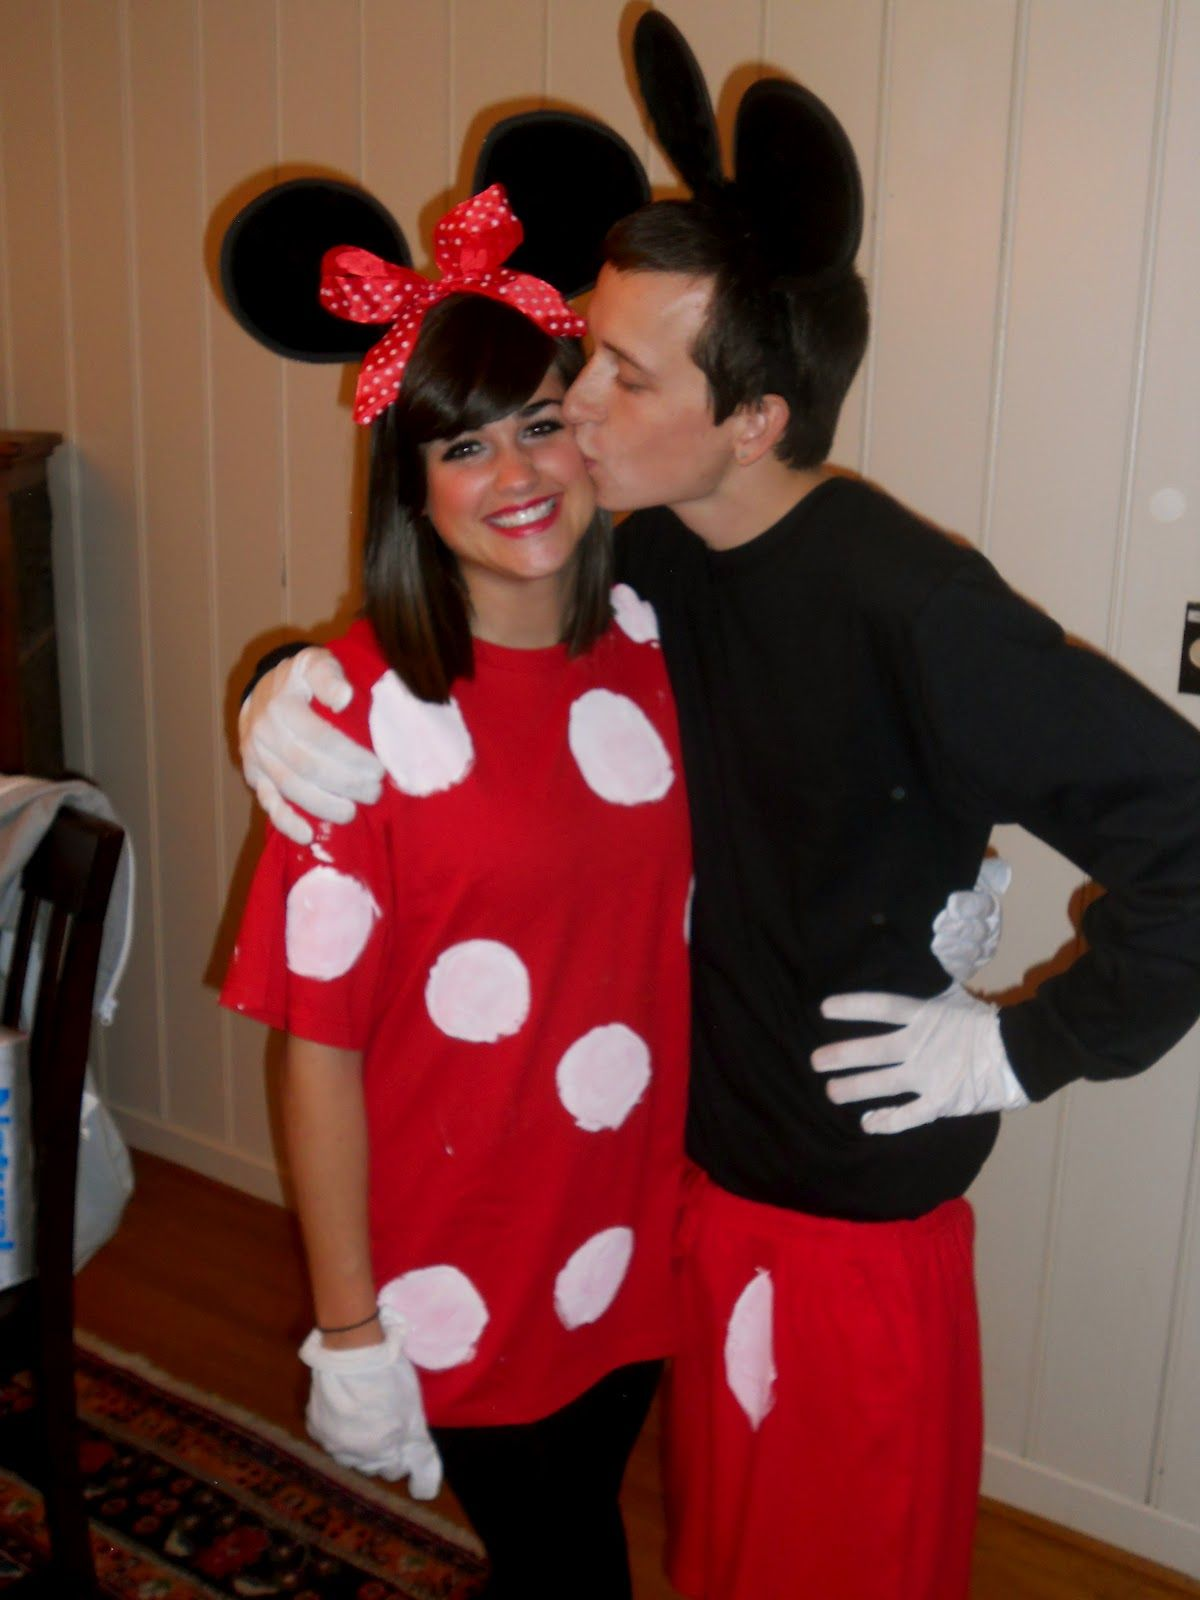 cute couple costumes trying to think of a cute couple